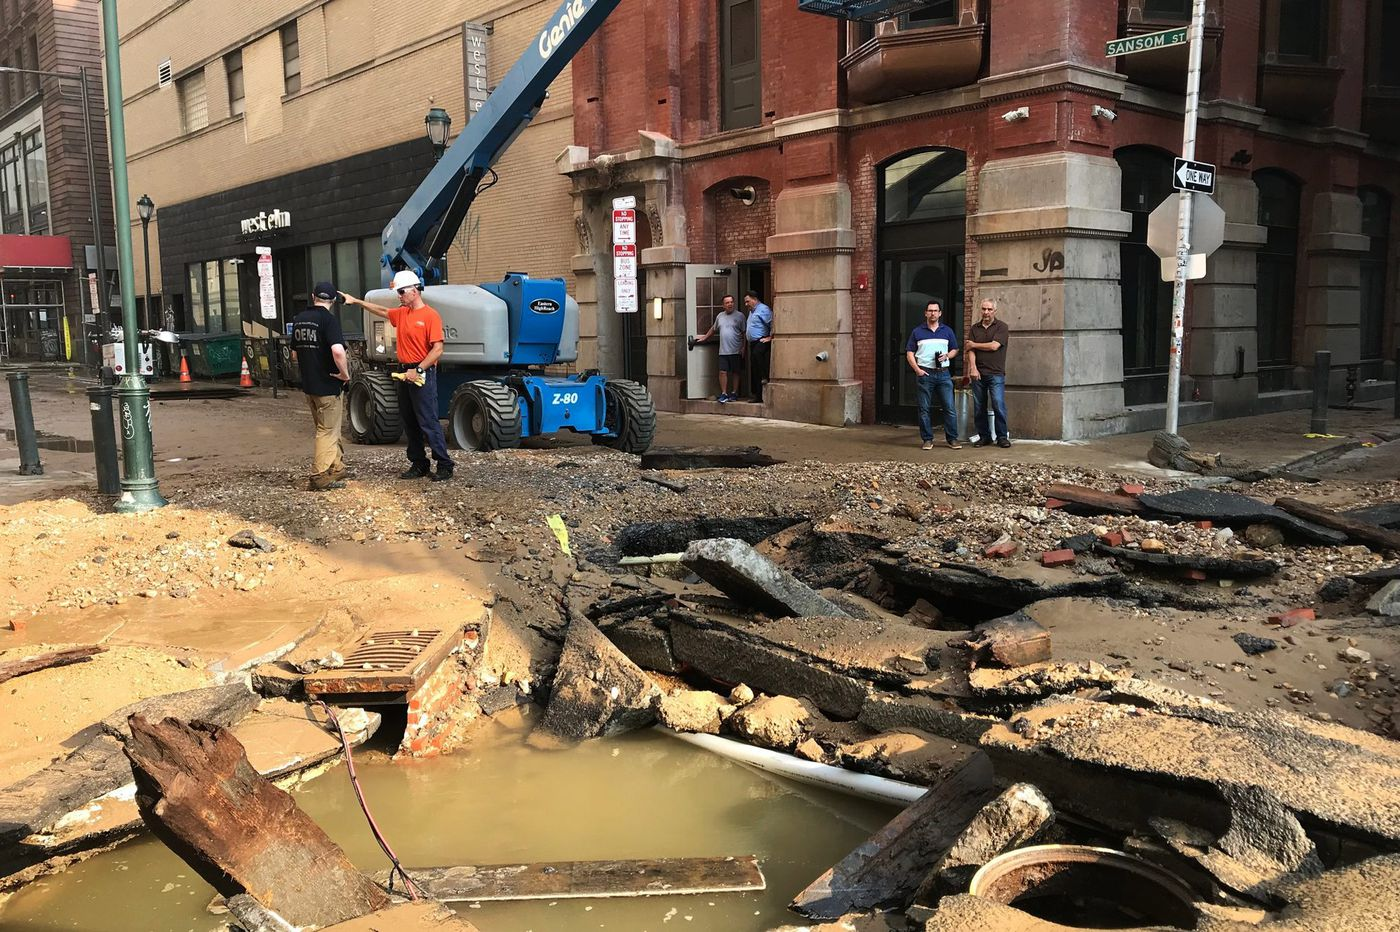 Center City water main break aftermath: A few buildings still lack power, months of work ahead